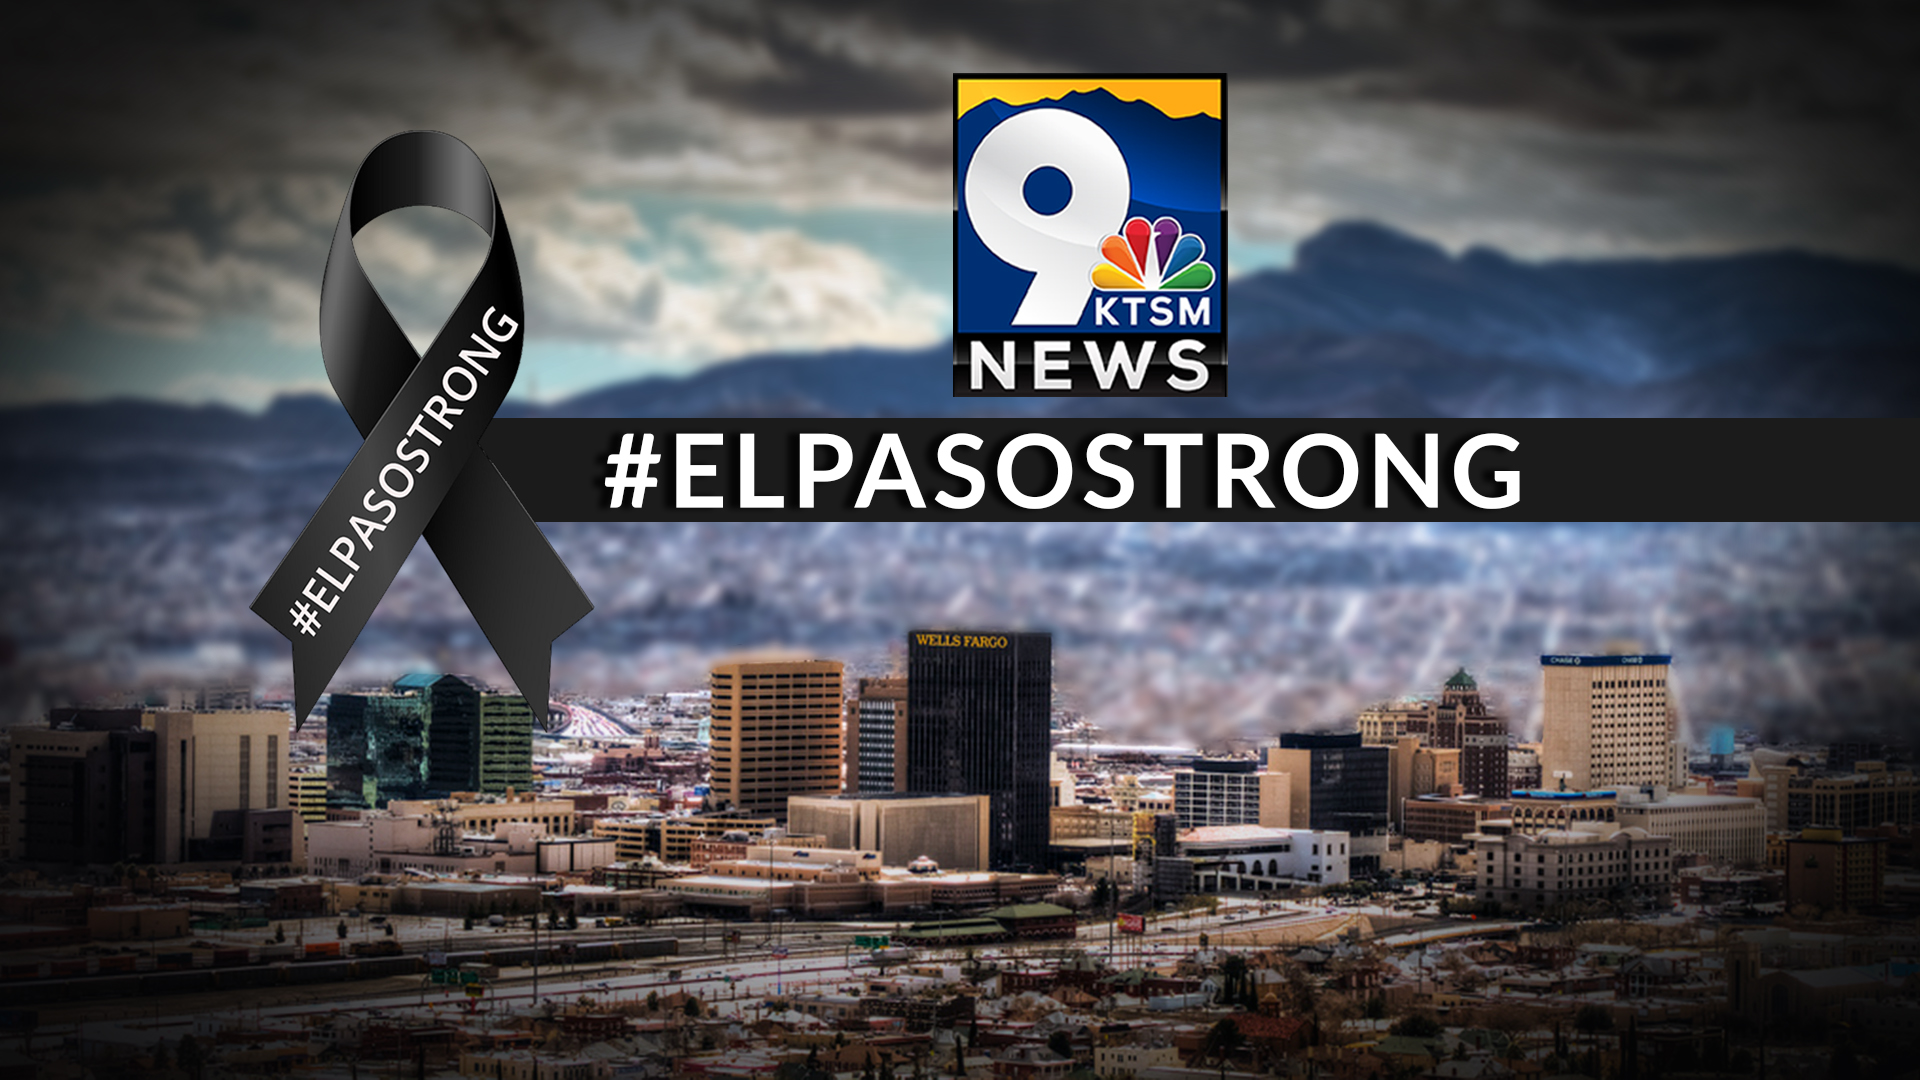 20 dead, 26 injured in El Paso Walmart shooting | WATE